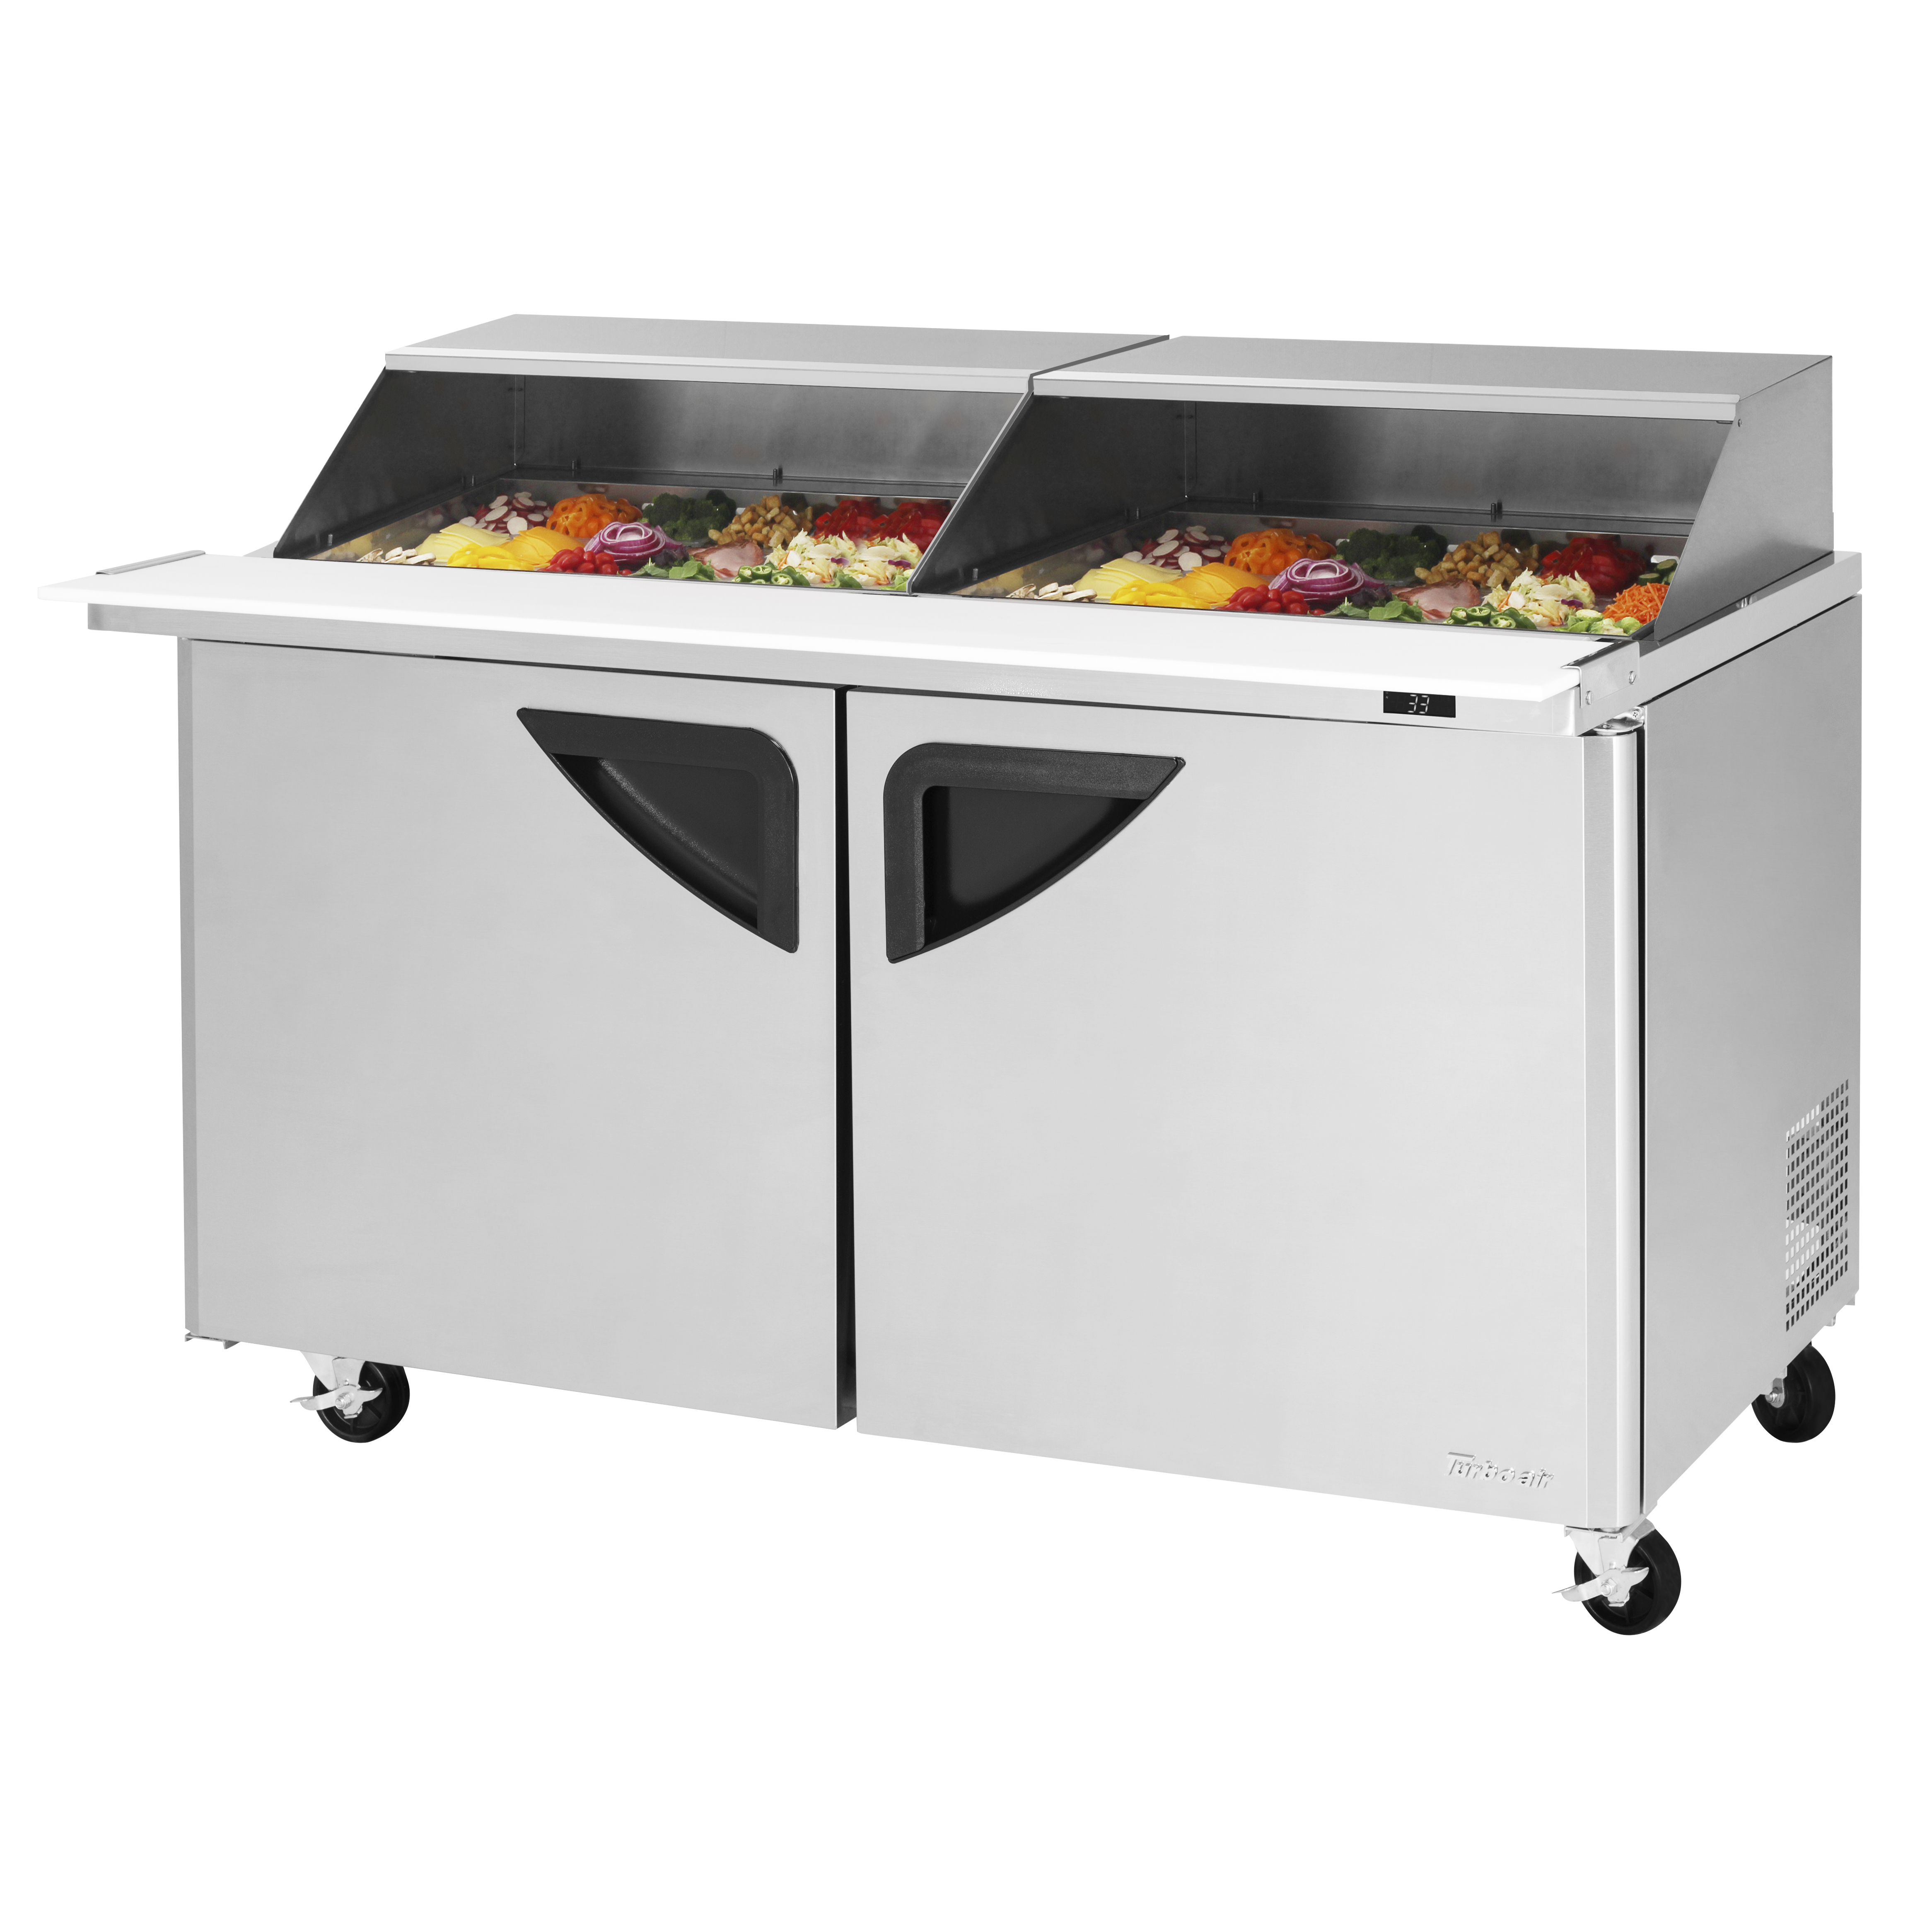 Turbo Air TST-60SD-24-N-SL refrigerated counter, mega top sandwich / salad unit